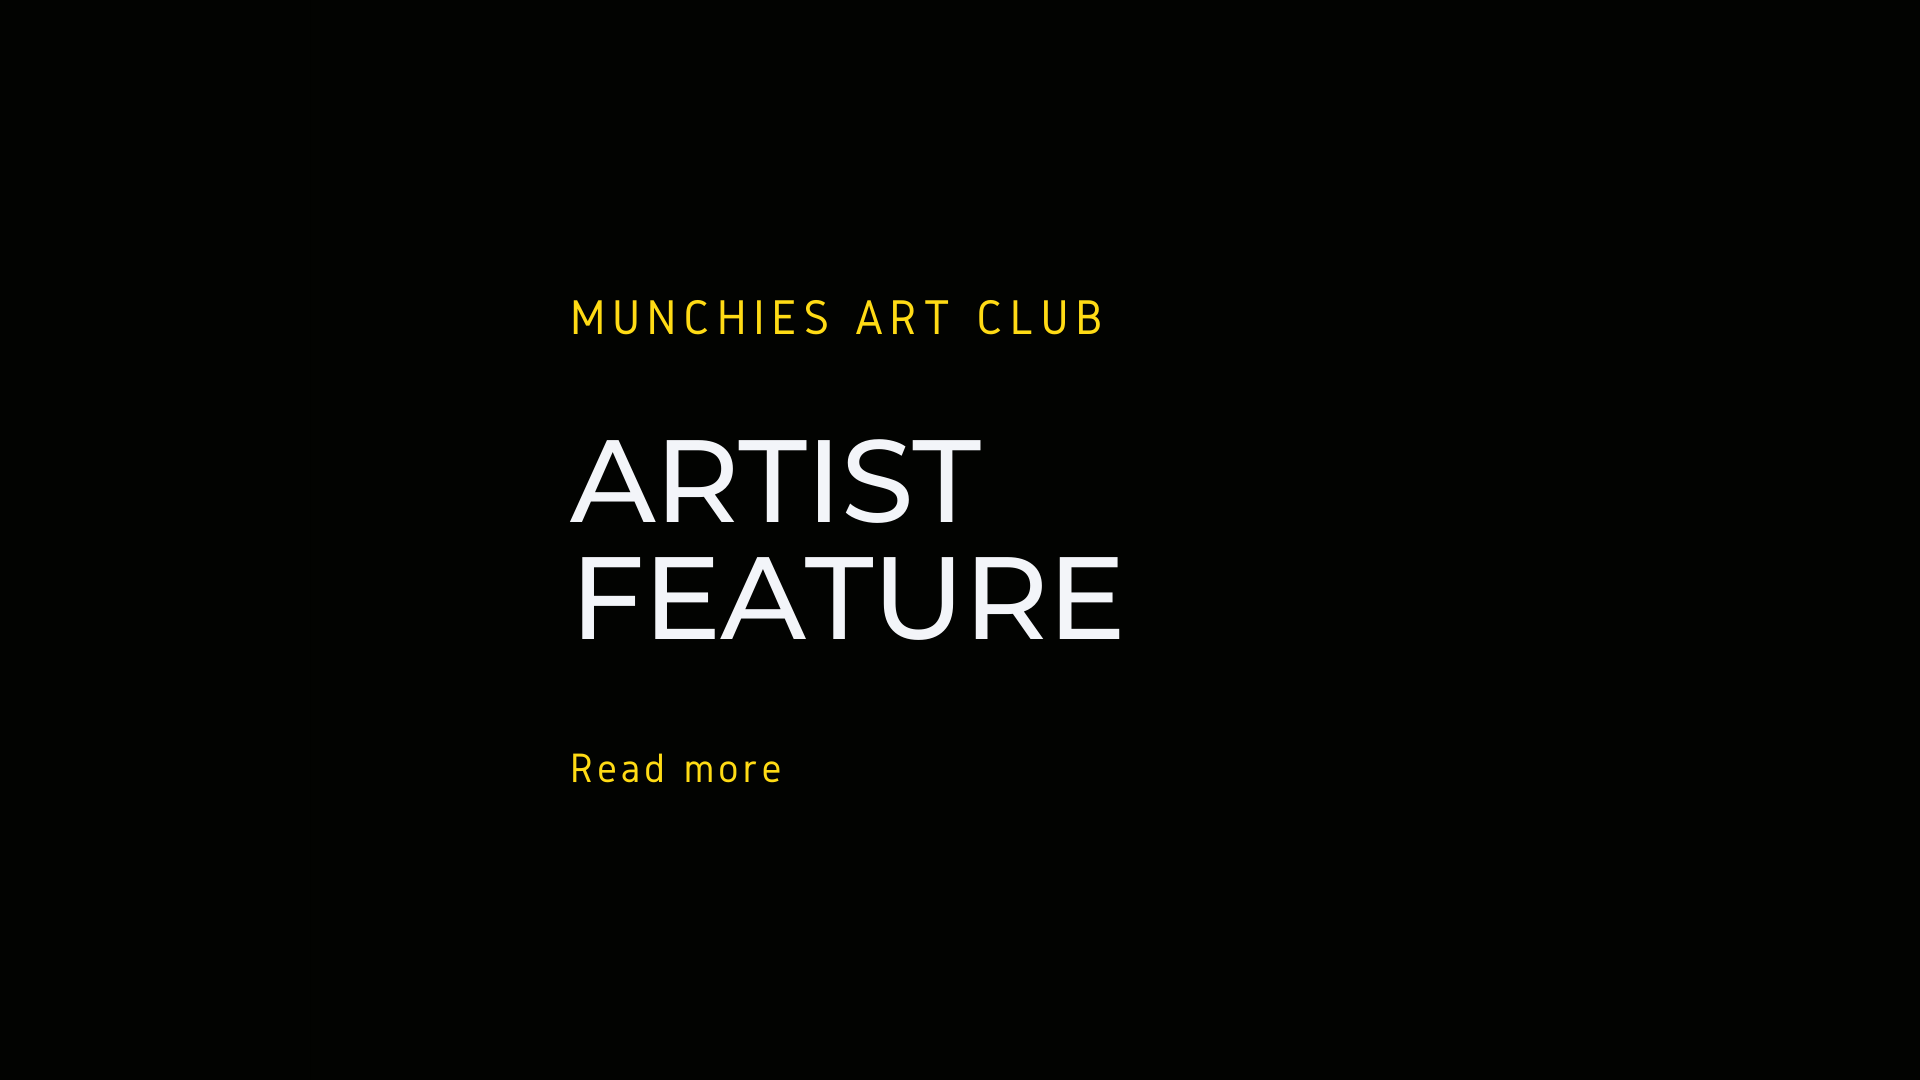 munchies art Club, artist feature, link